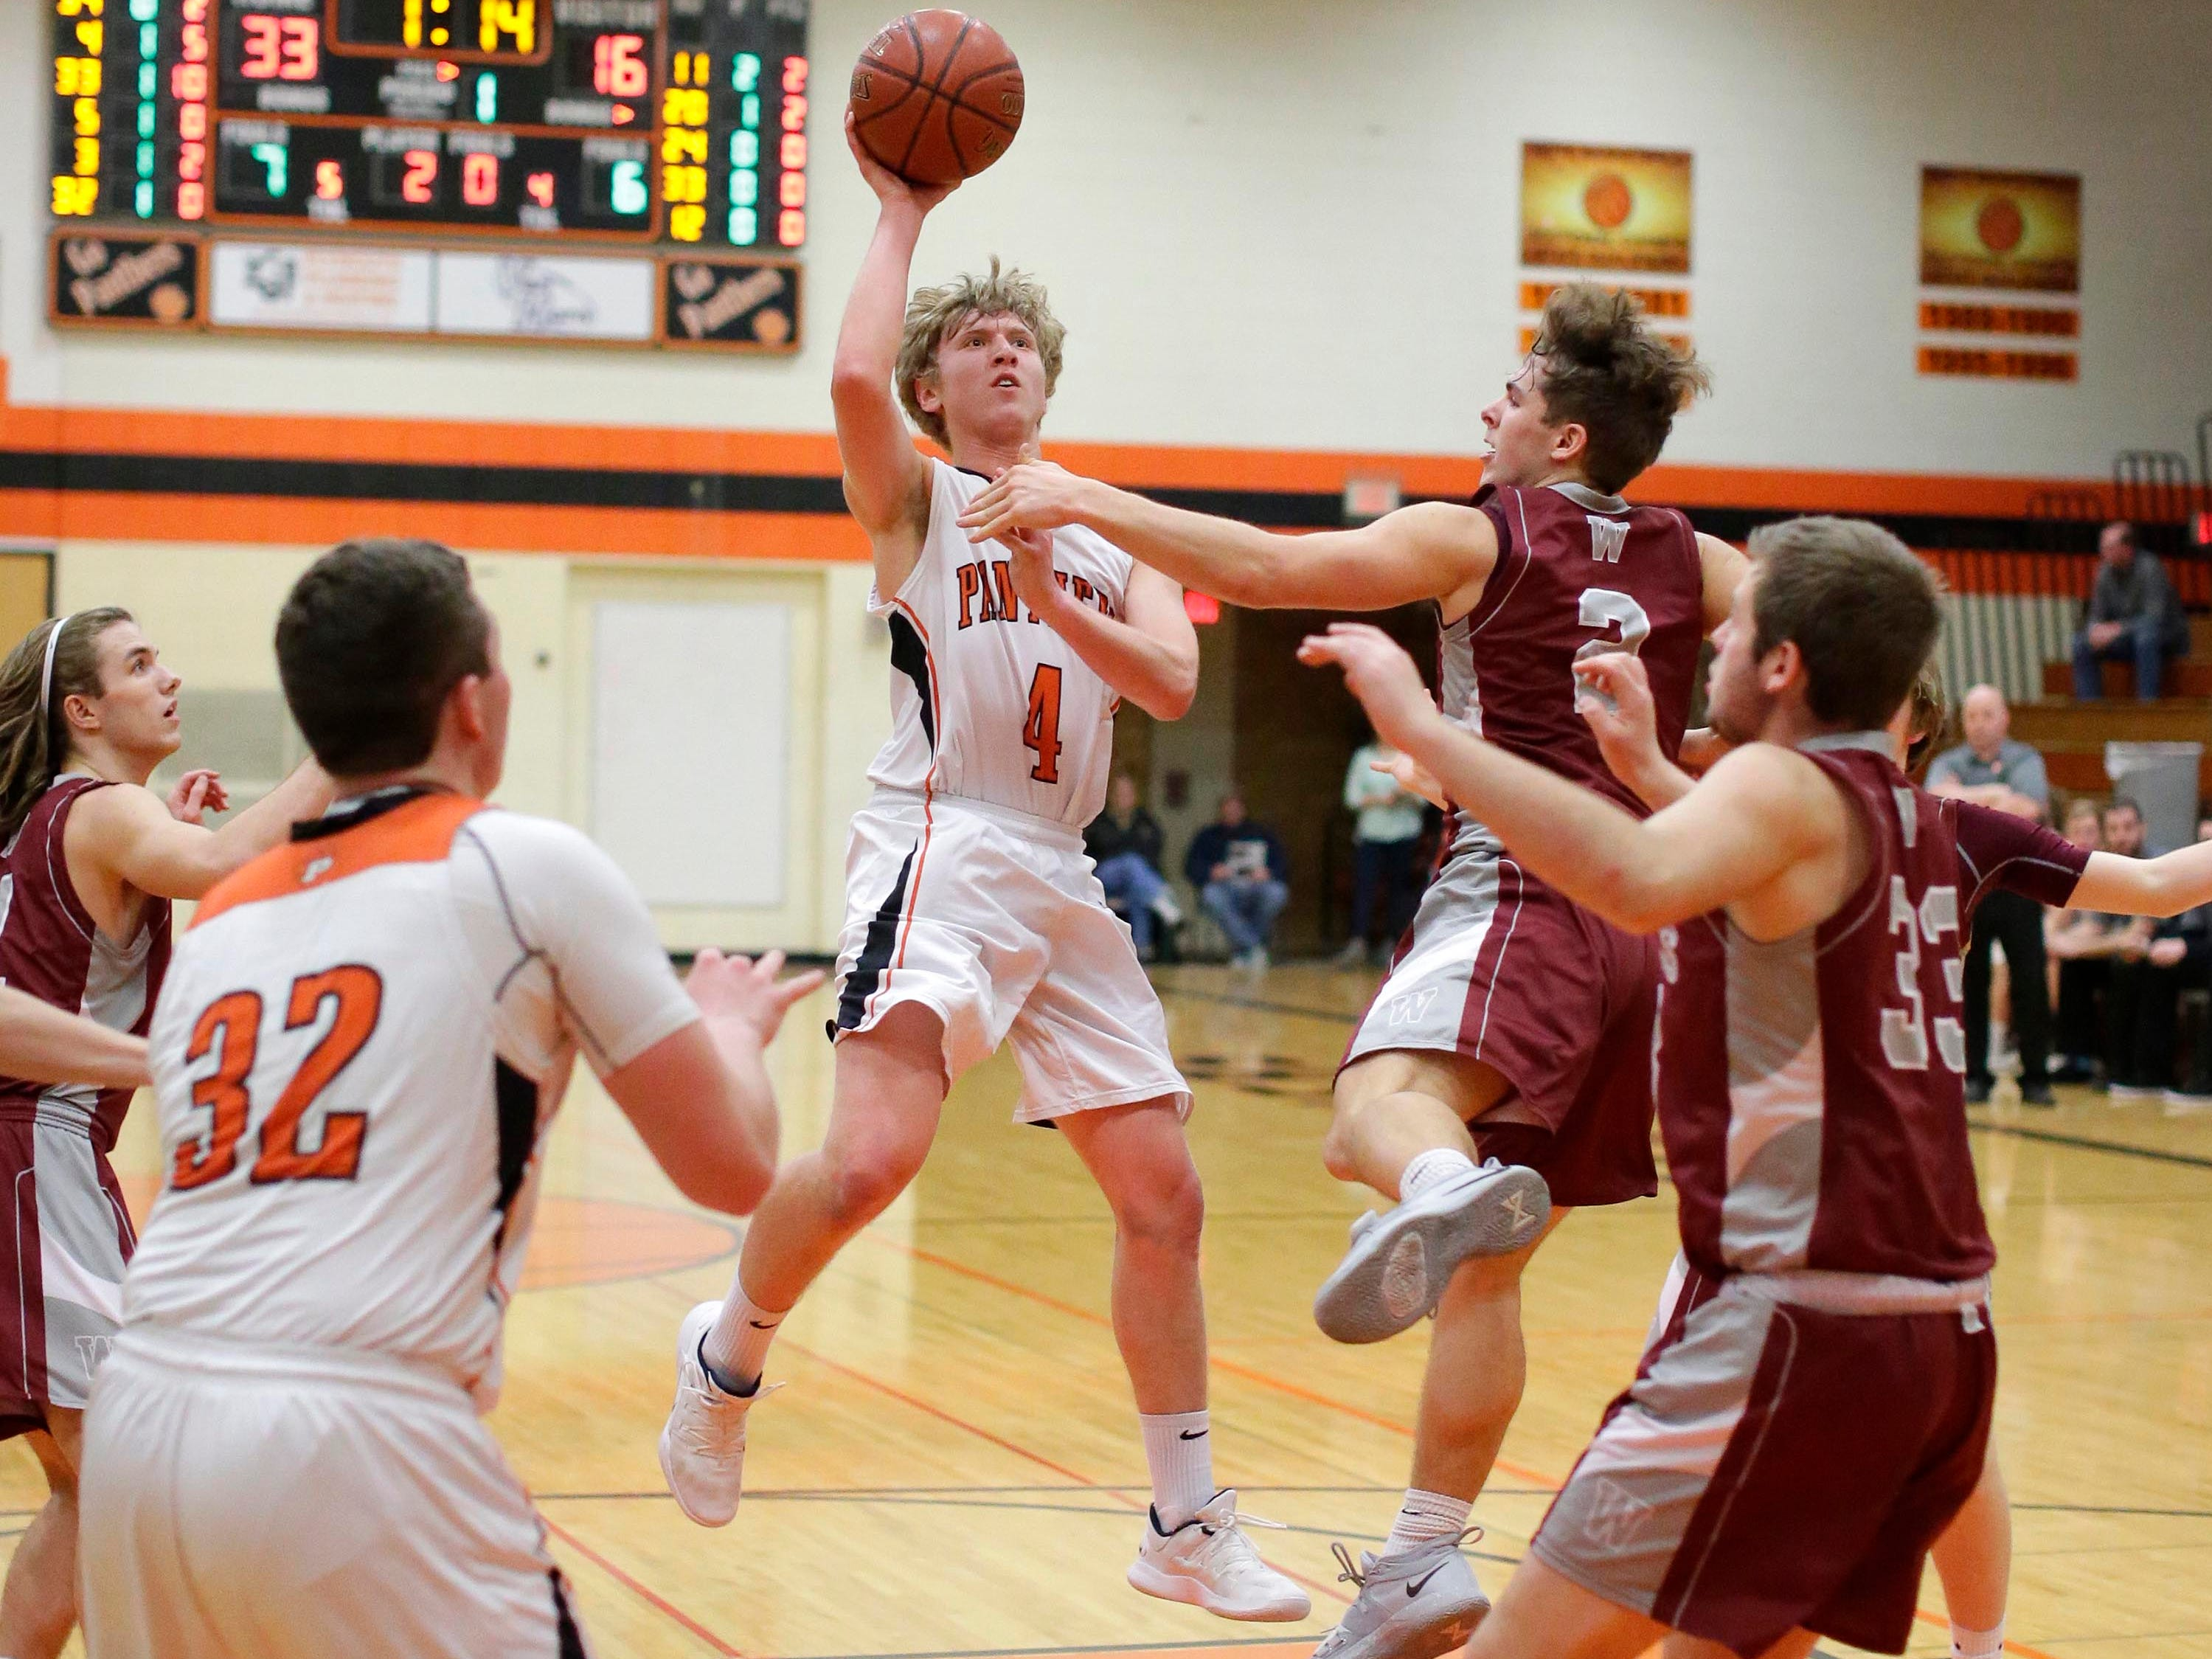 Plymouth's Joe Steinhardt (4) aims for the basket against Winneconne, Wednesday, February 21, 2019, in Plymouth, Wis.